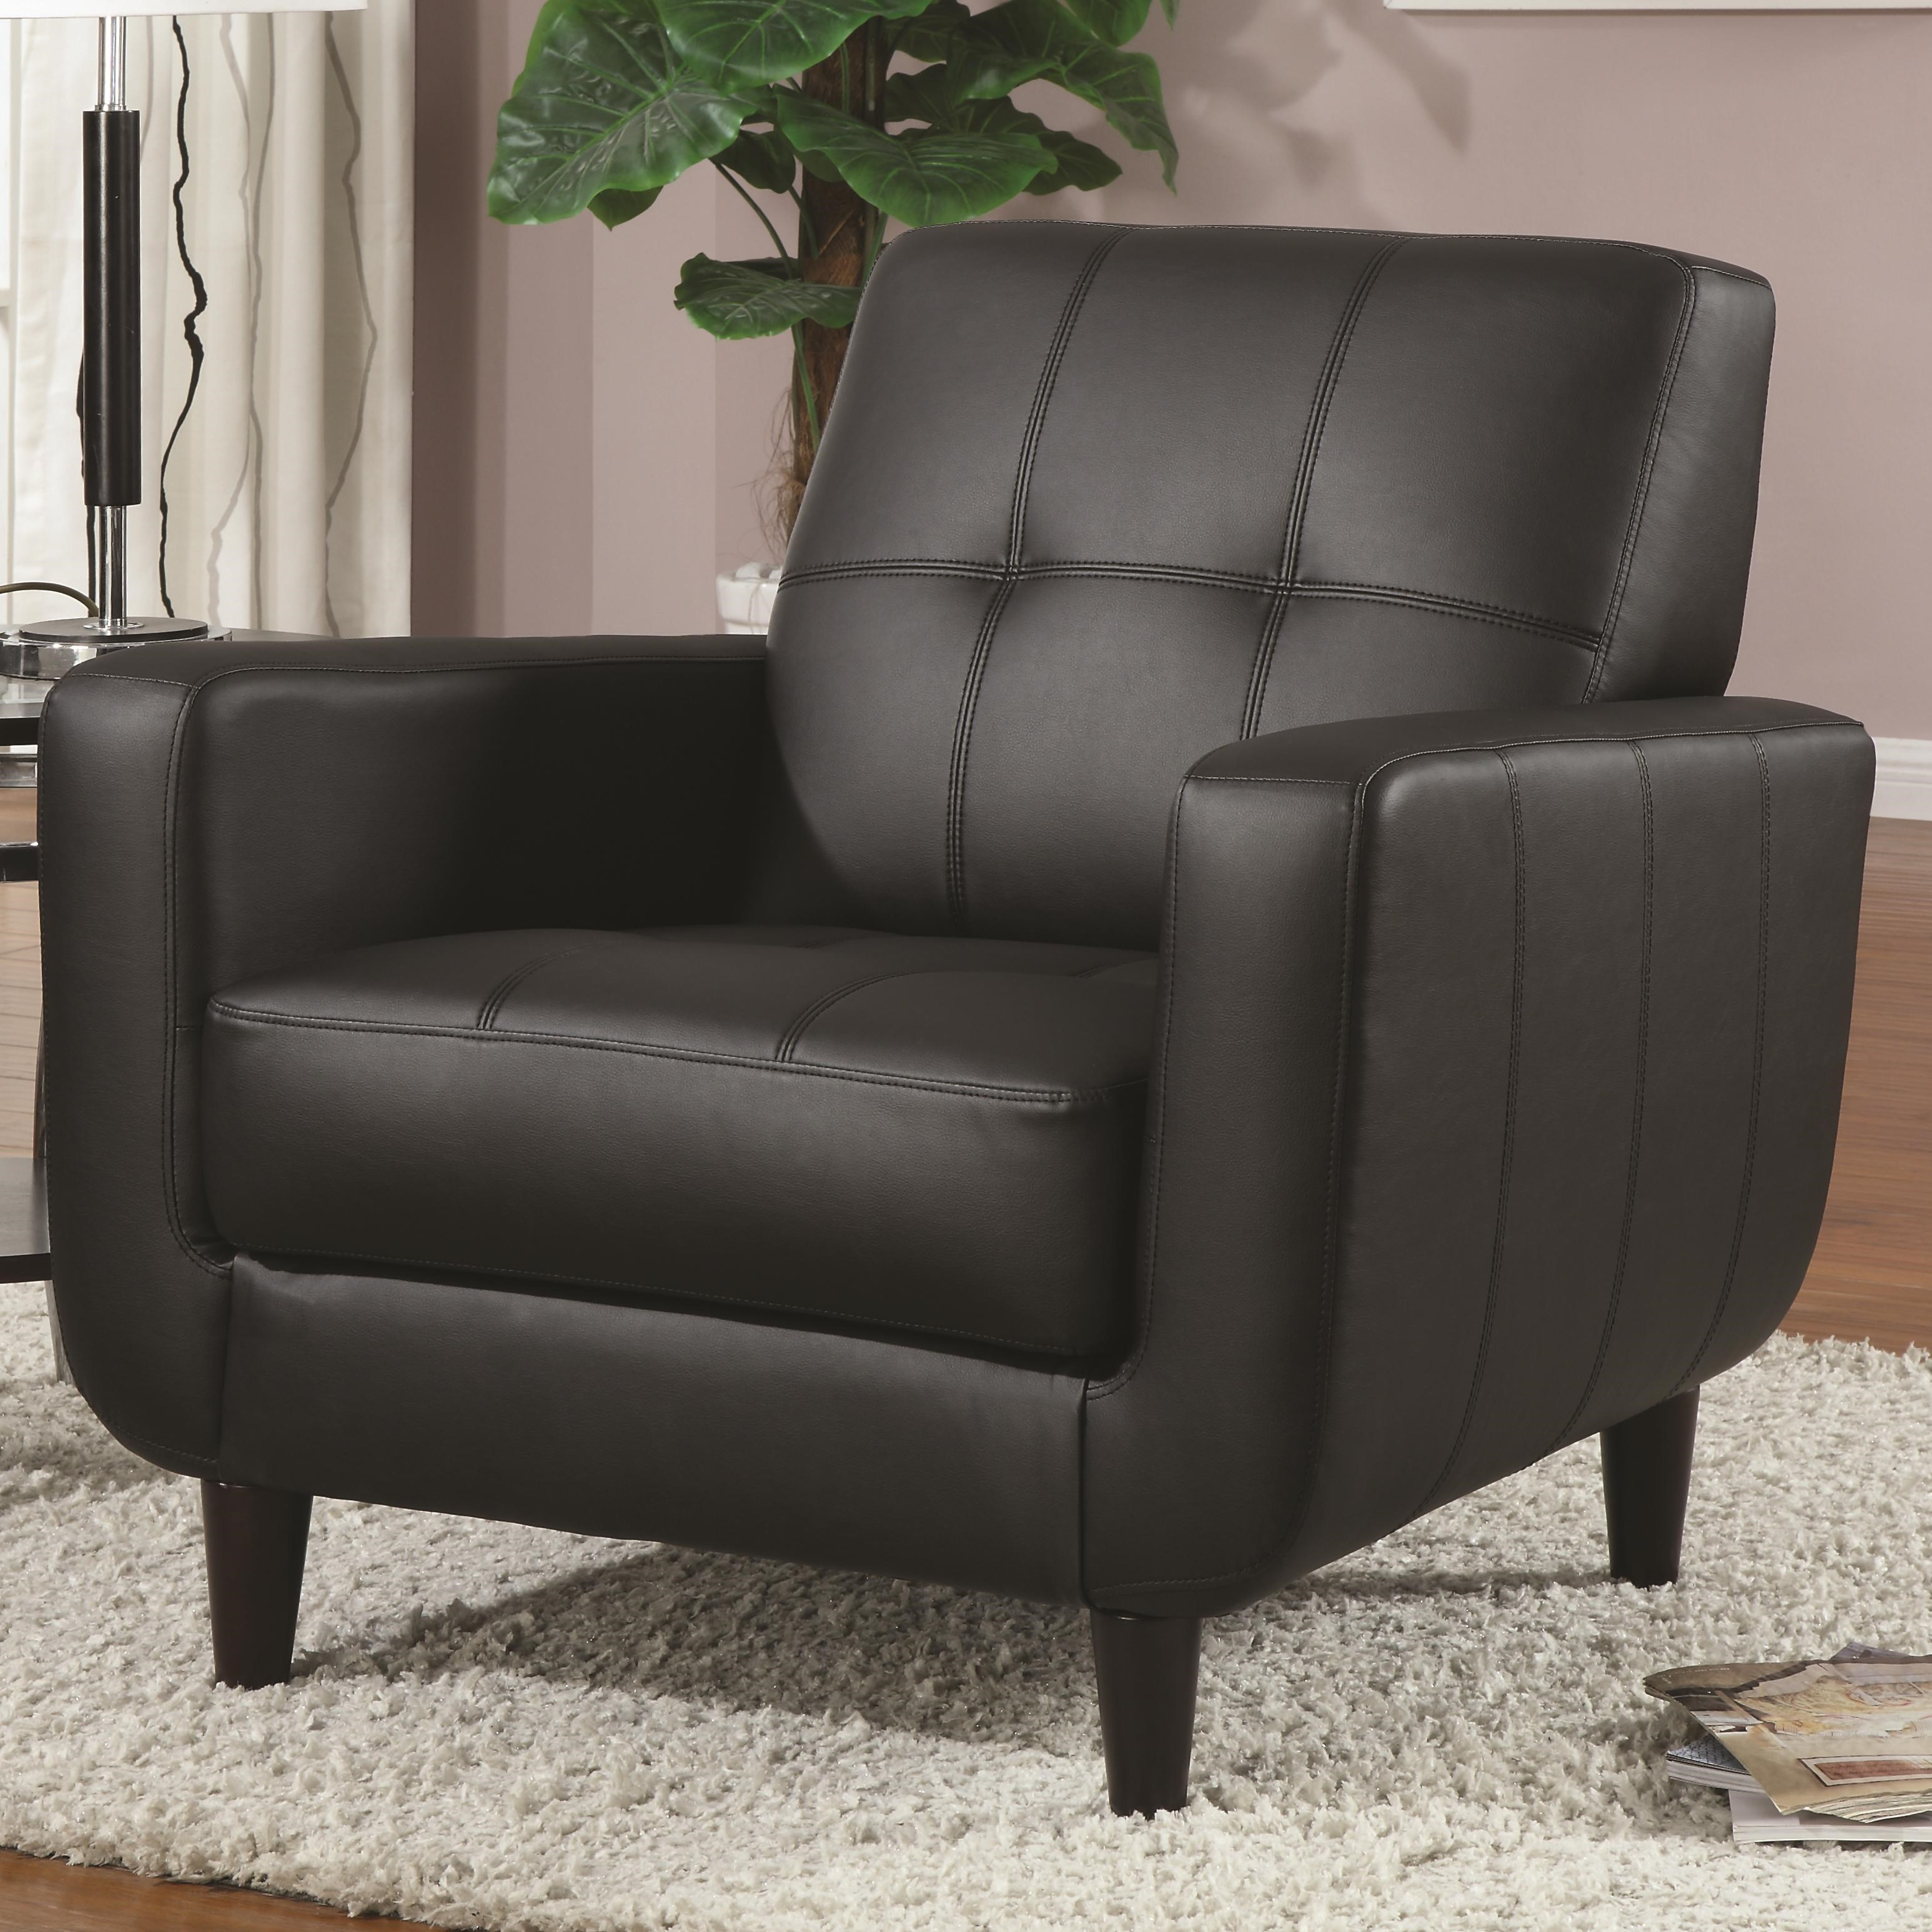 Attrayant Accent Seating Accent Chair W/ Round Wood Legs By Coaster